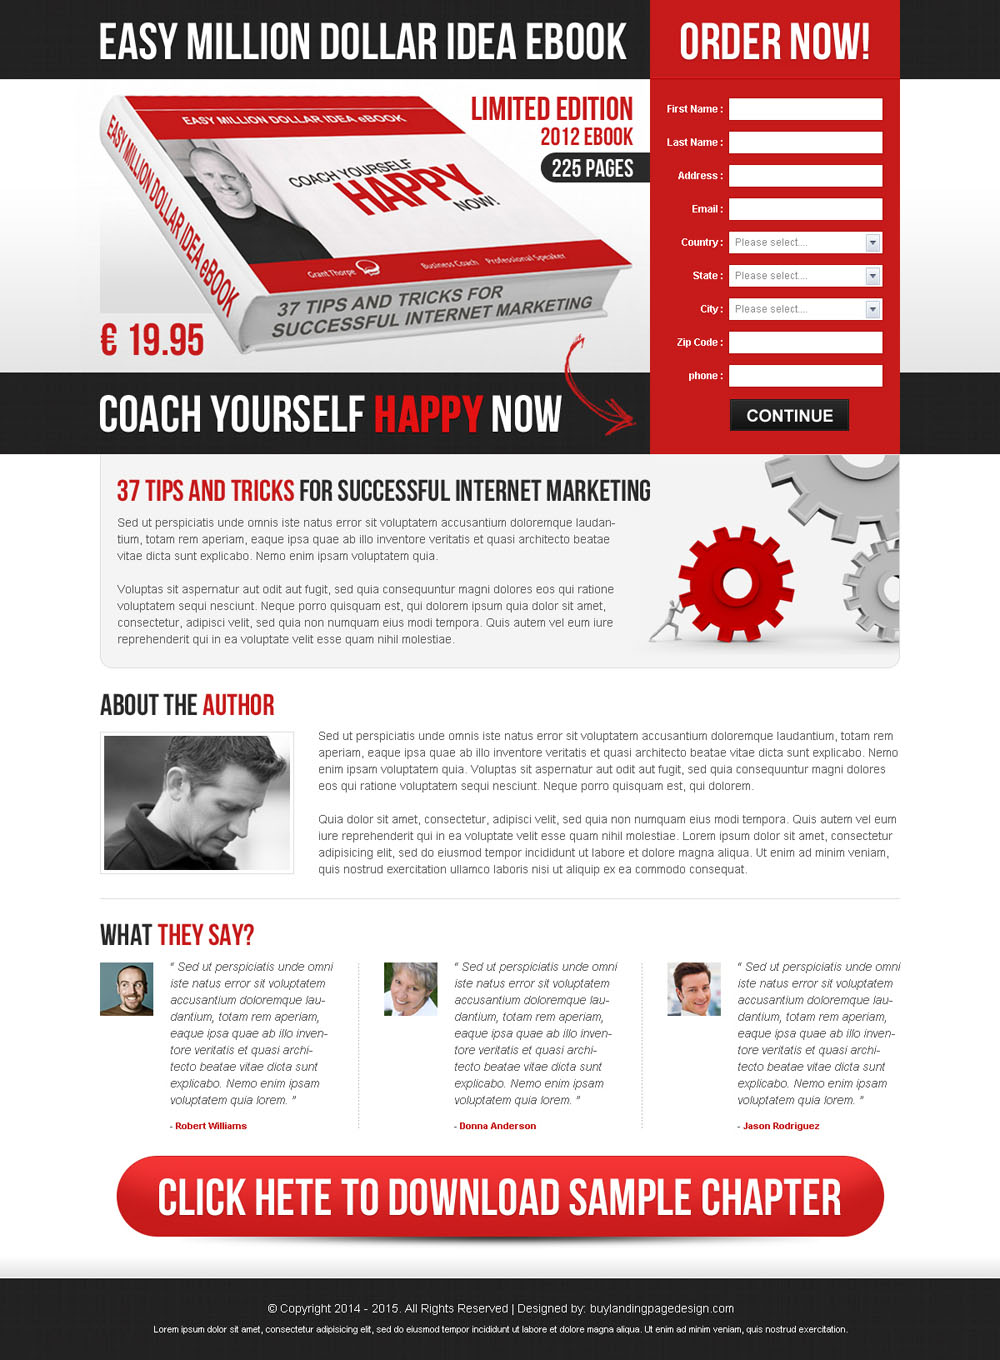 earn-money-online-idea-ebook-lead-capture-landing-page-design-templates-to-boost-your-business-idea-015